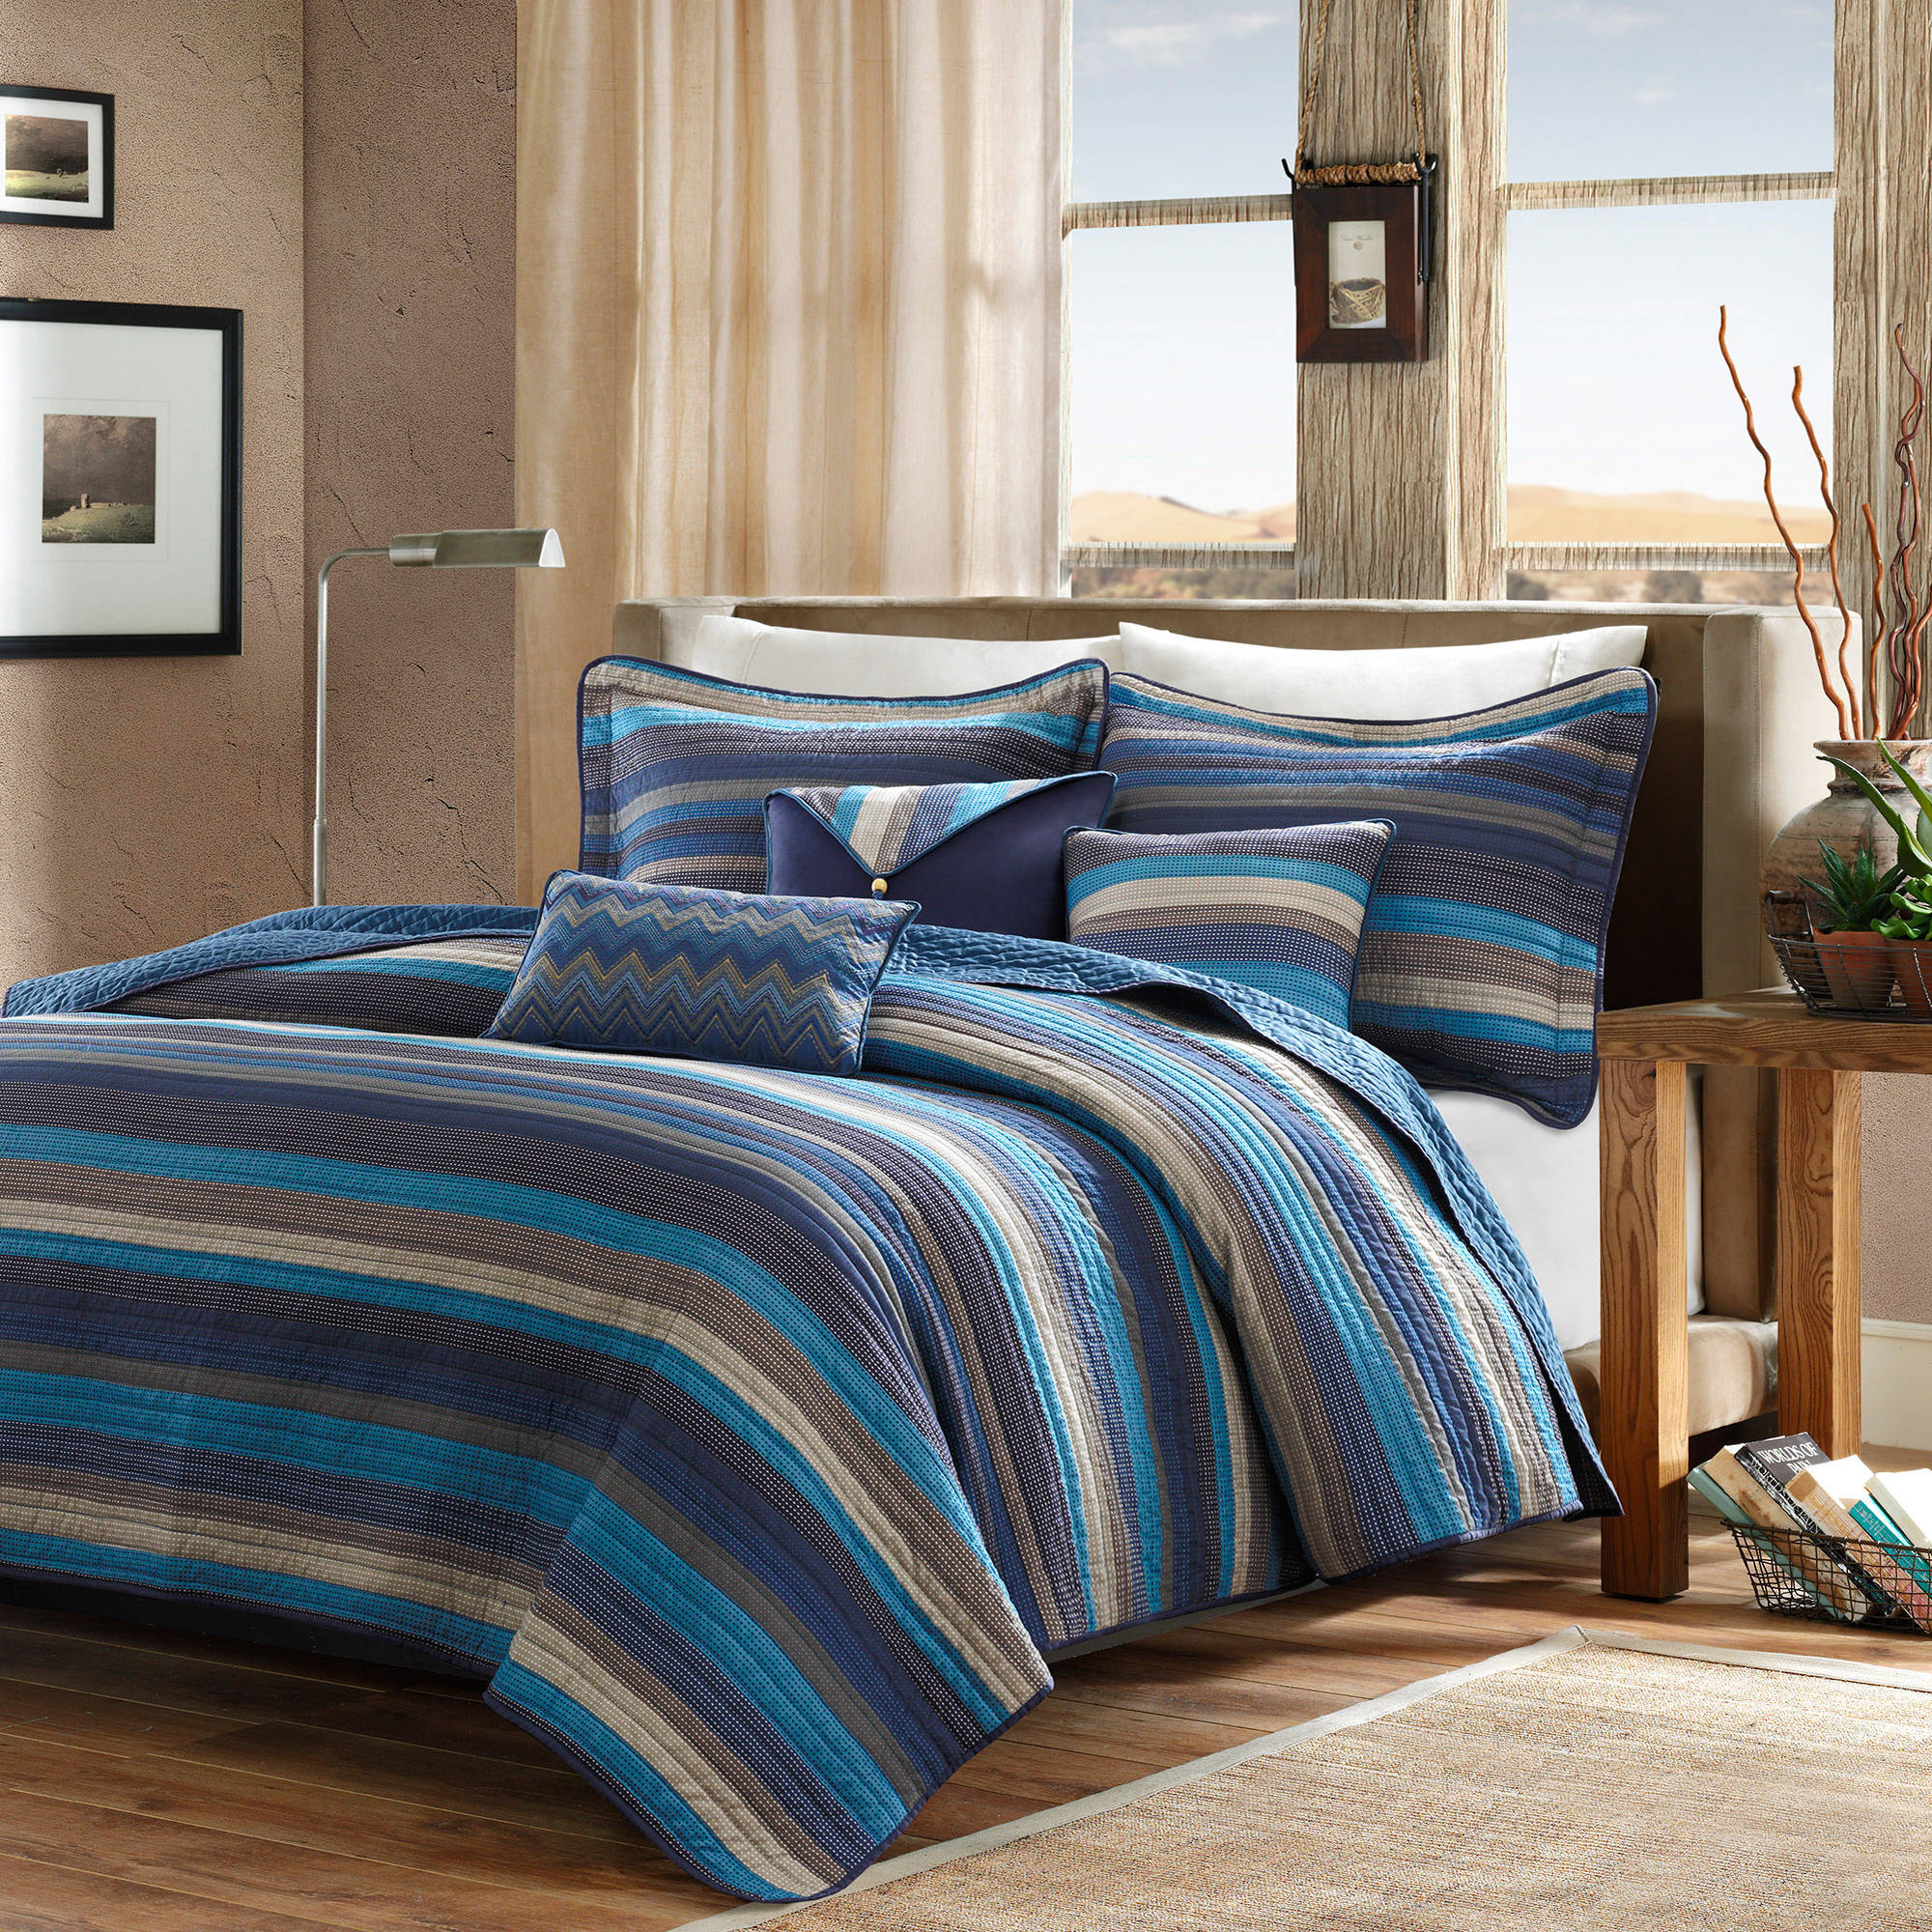 Home Essence Reyes Quilted Bedding Coverlet Set by E & E CO LTD